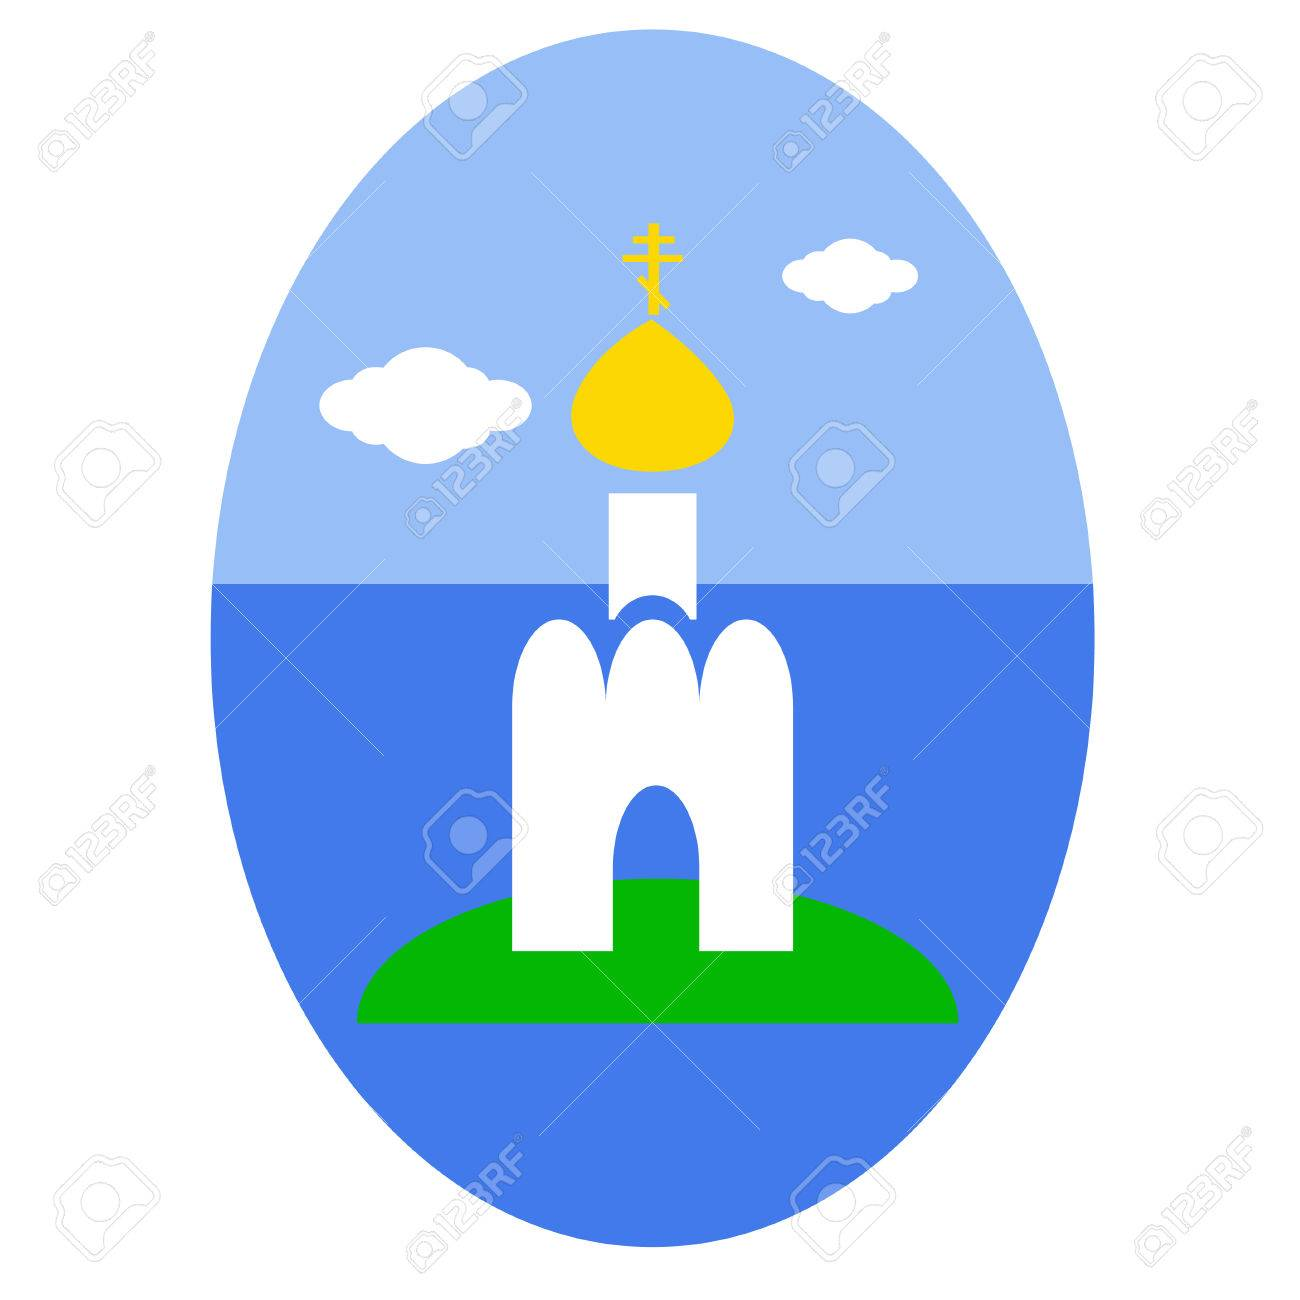 Russian Orthodox Church Easter Egg Sticker Royalty Free Cliparts